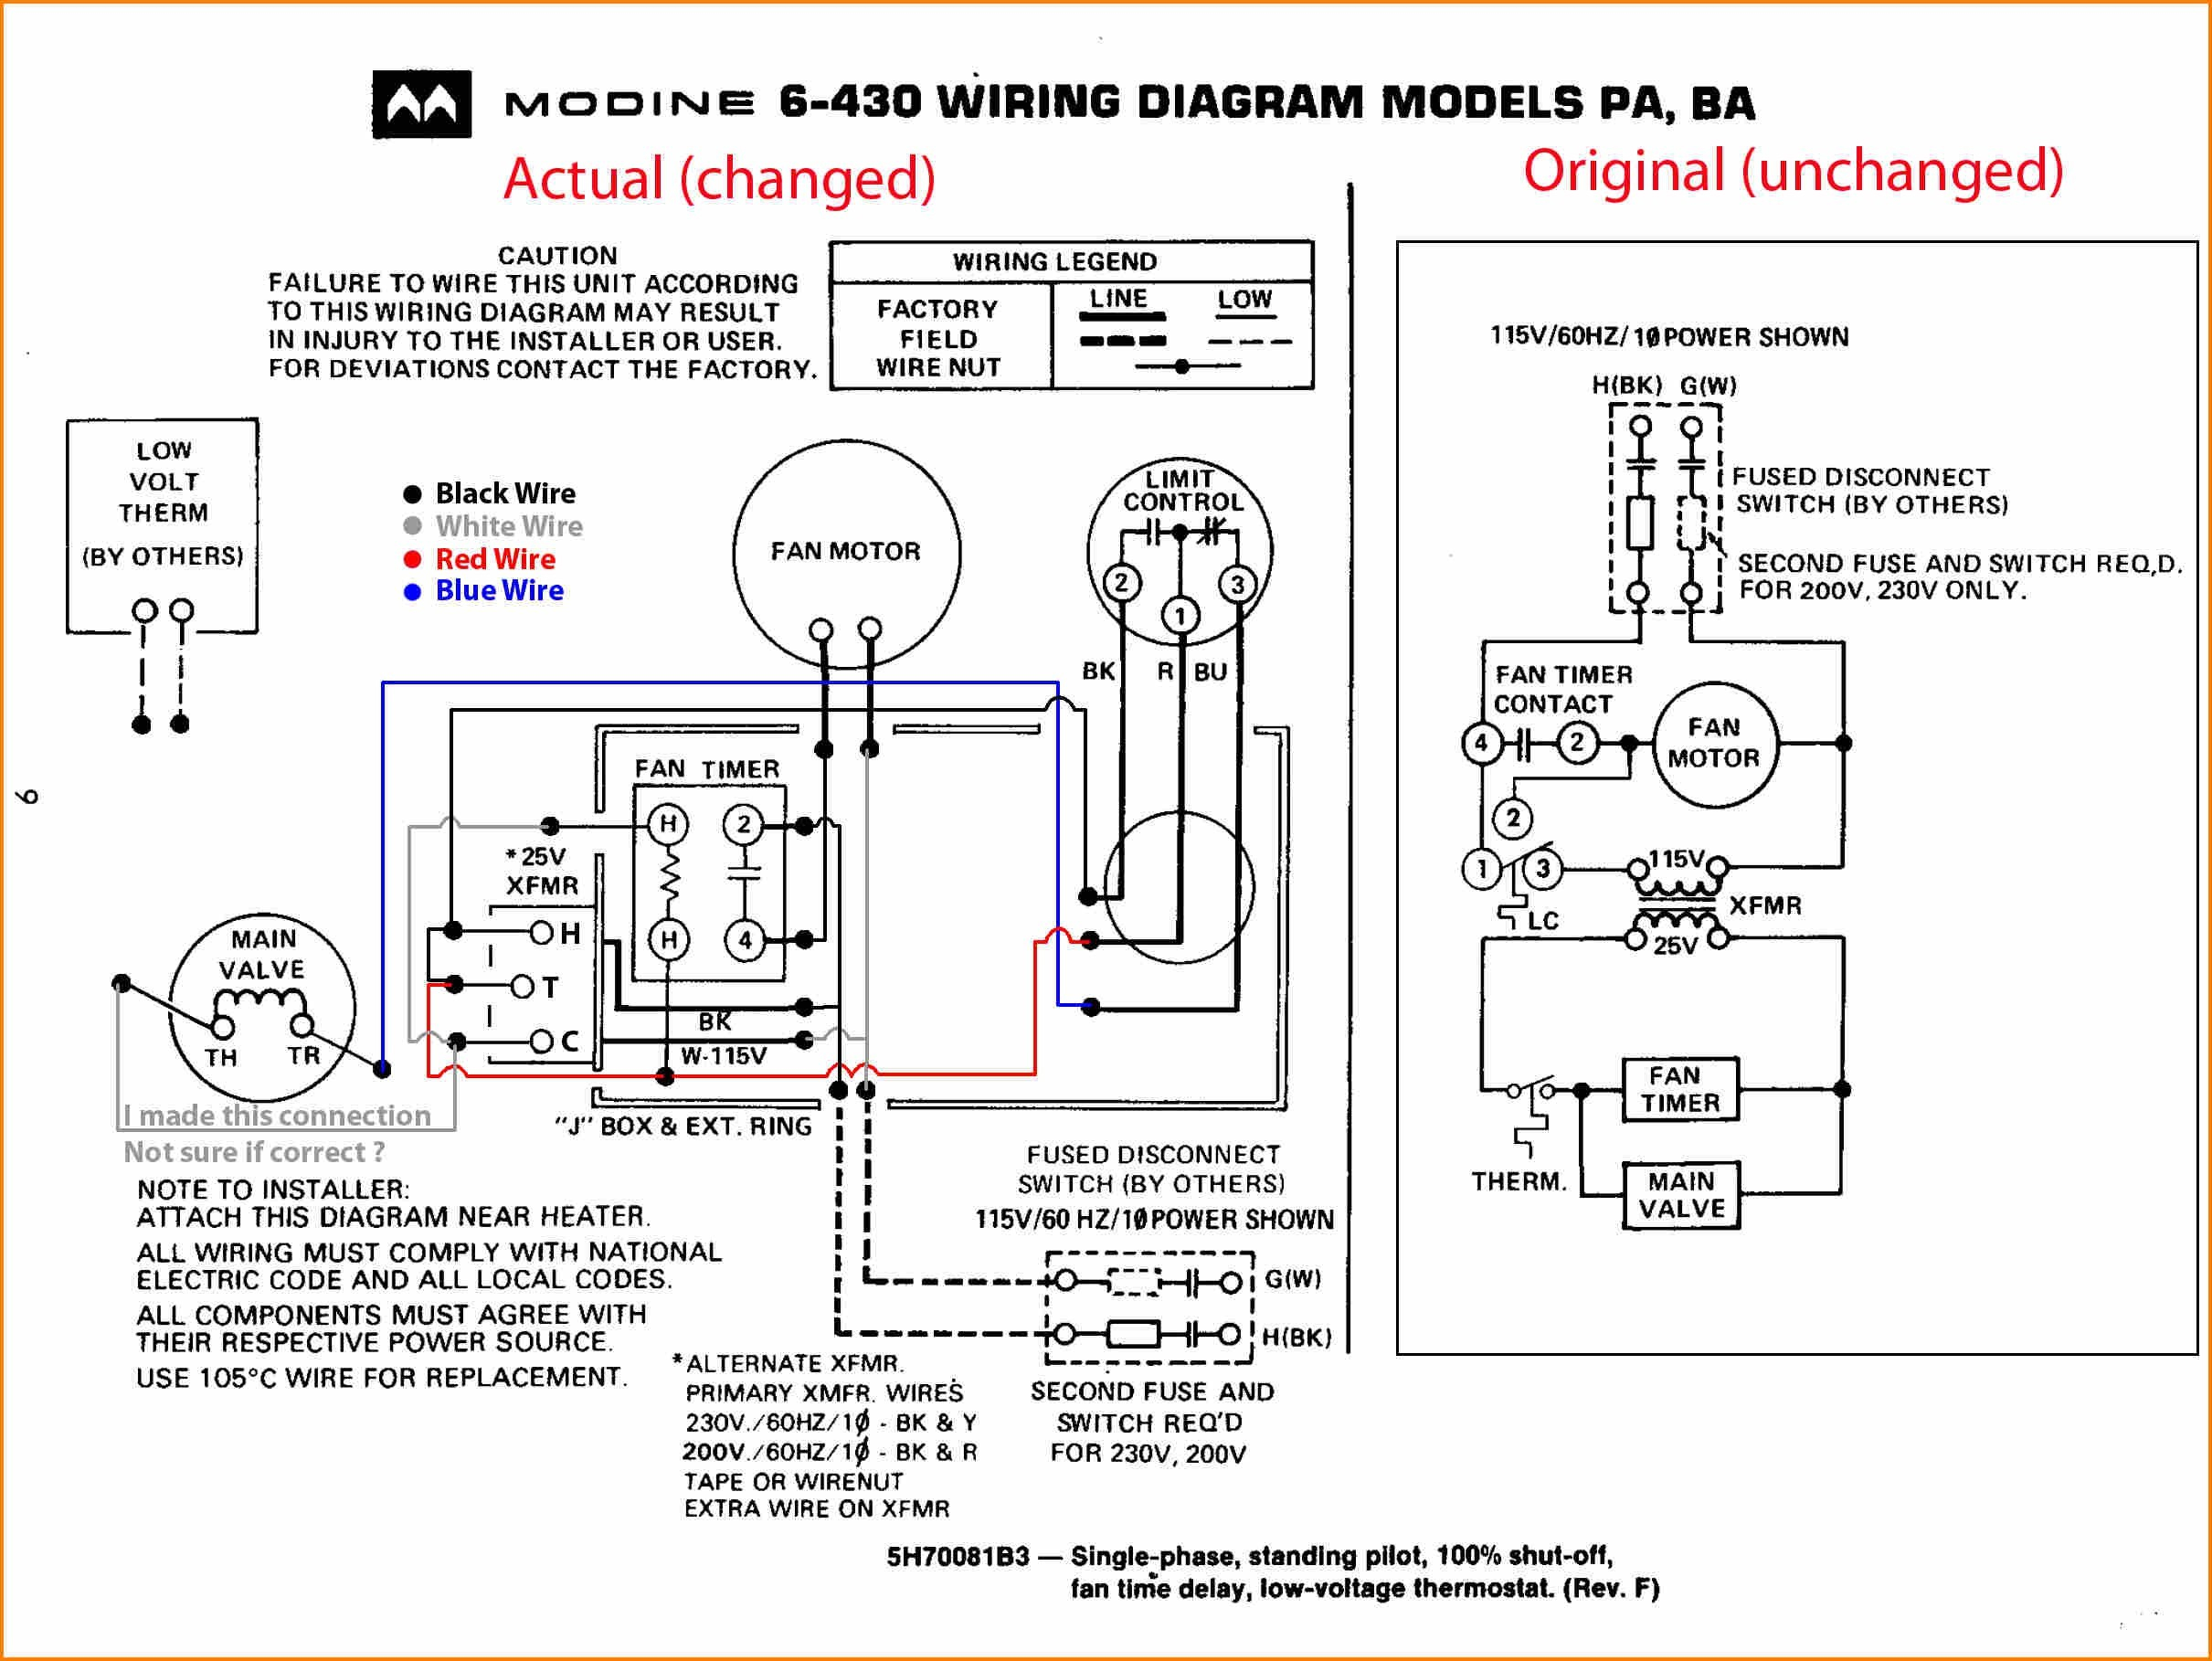 Ge Furnace Blower Motor Wiring Diagram - Wiring Diagram for Fasco Blower Motor Best Ge Furnace Blower Motor Wiring Diagram 3 Speed Furnace Motor Wiring 1c